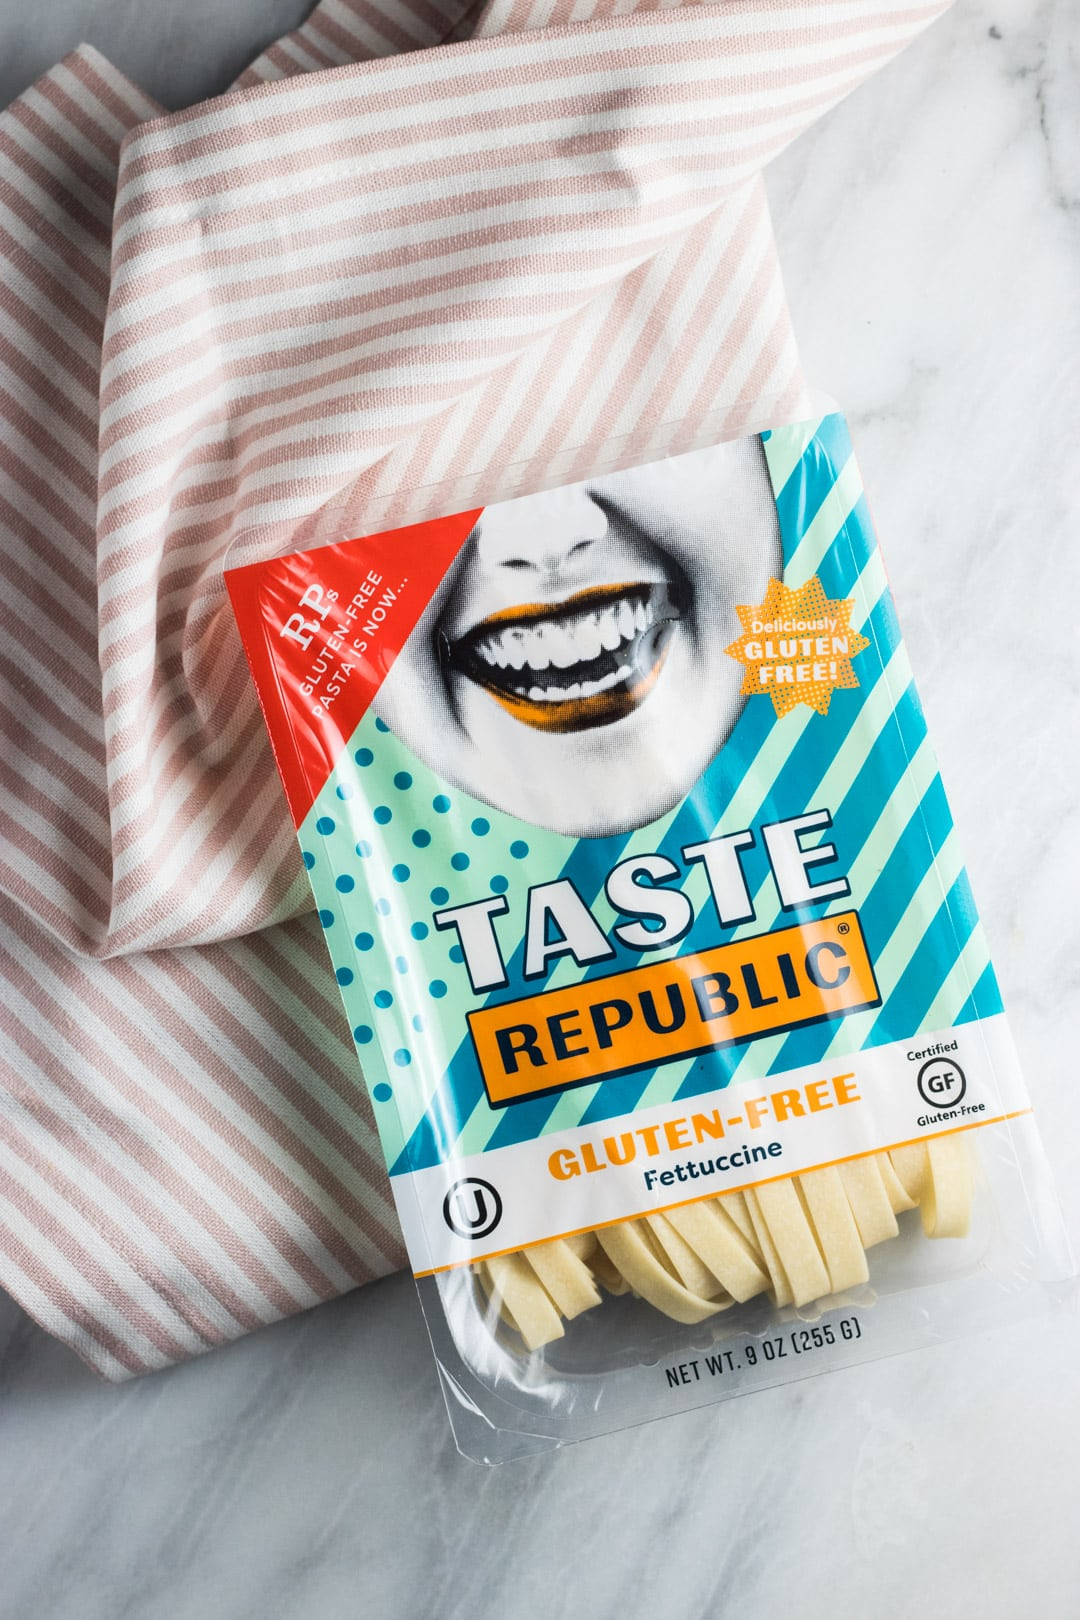 A package of Taste Republic Gluten Free Pasta on a light pink and white striped cloth napkin